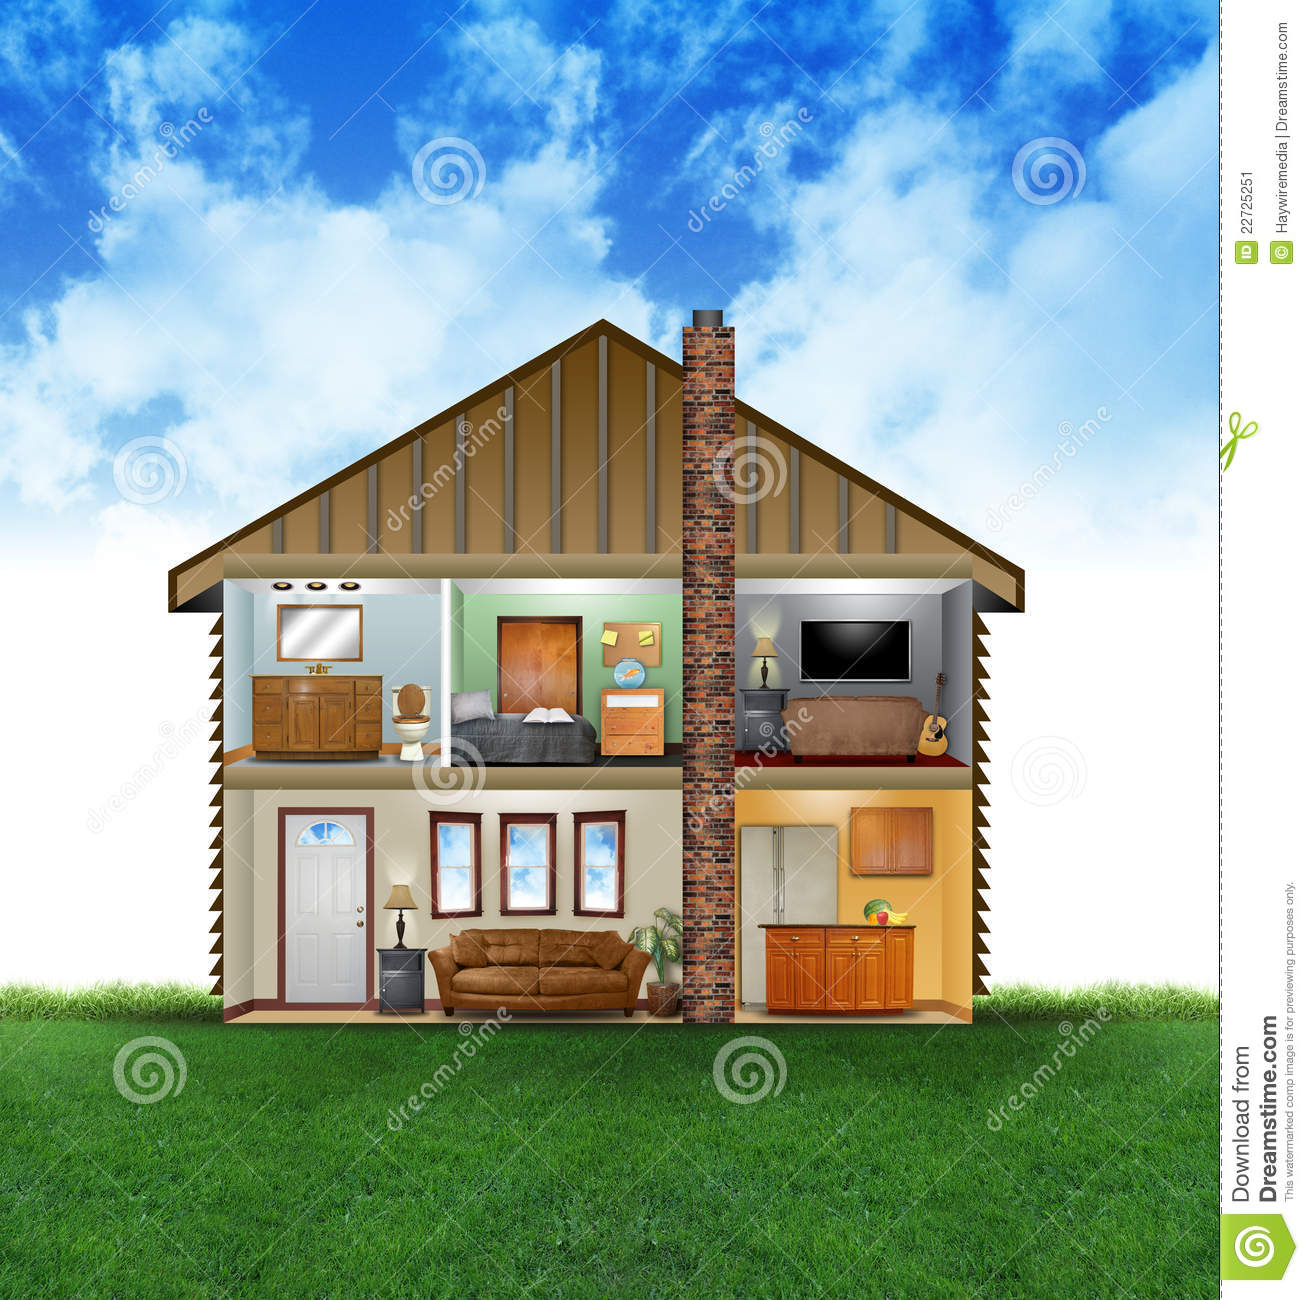 Eco Friendly House Interior Stock Image - Image: 22725251